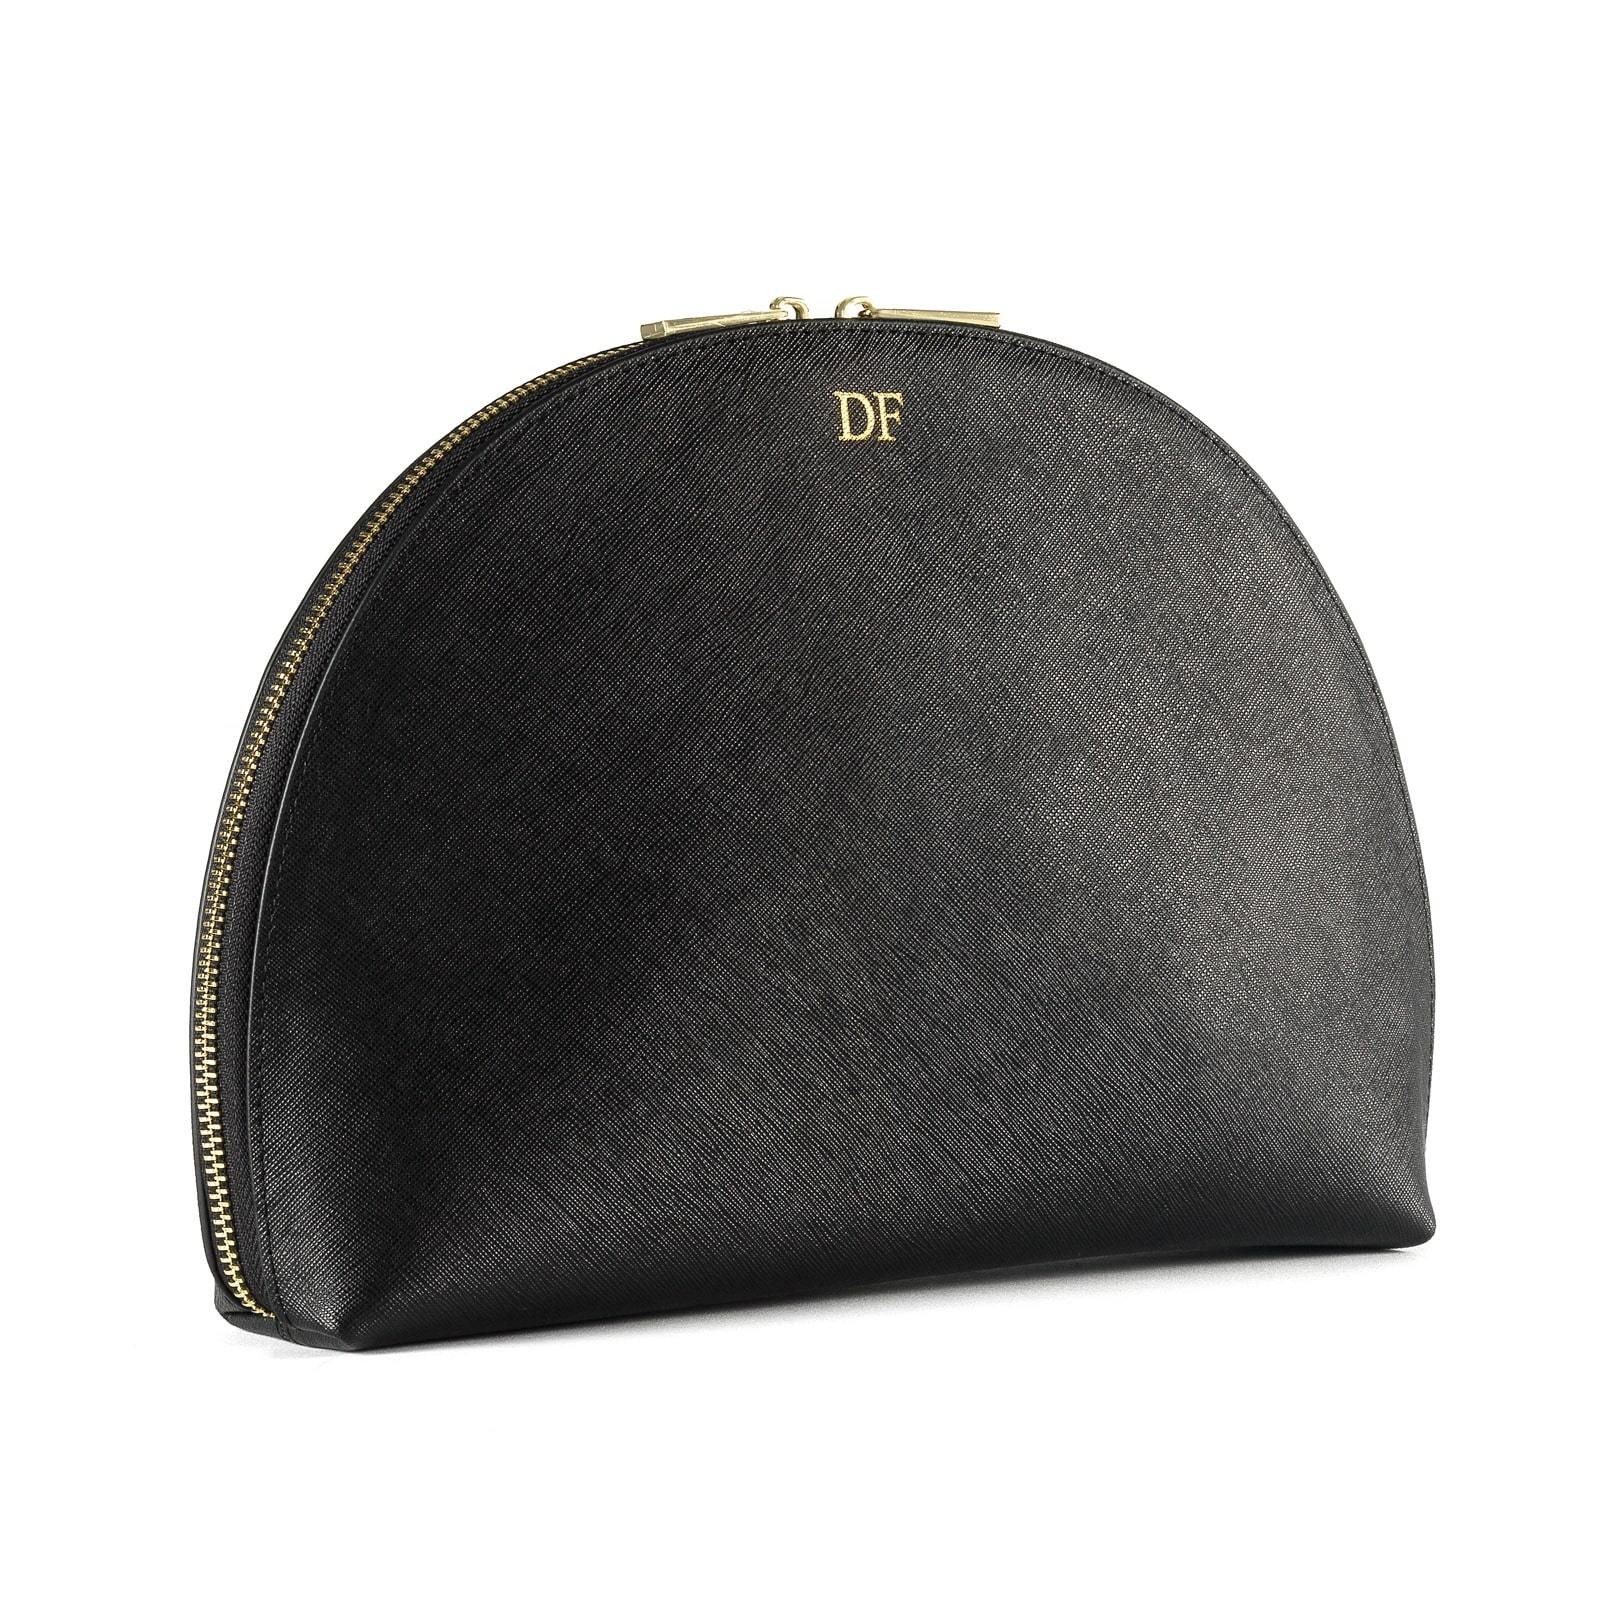 Personalised Black Saffiano Leather Half Moon Clutch side image